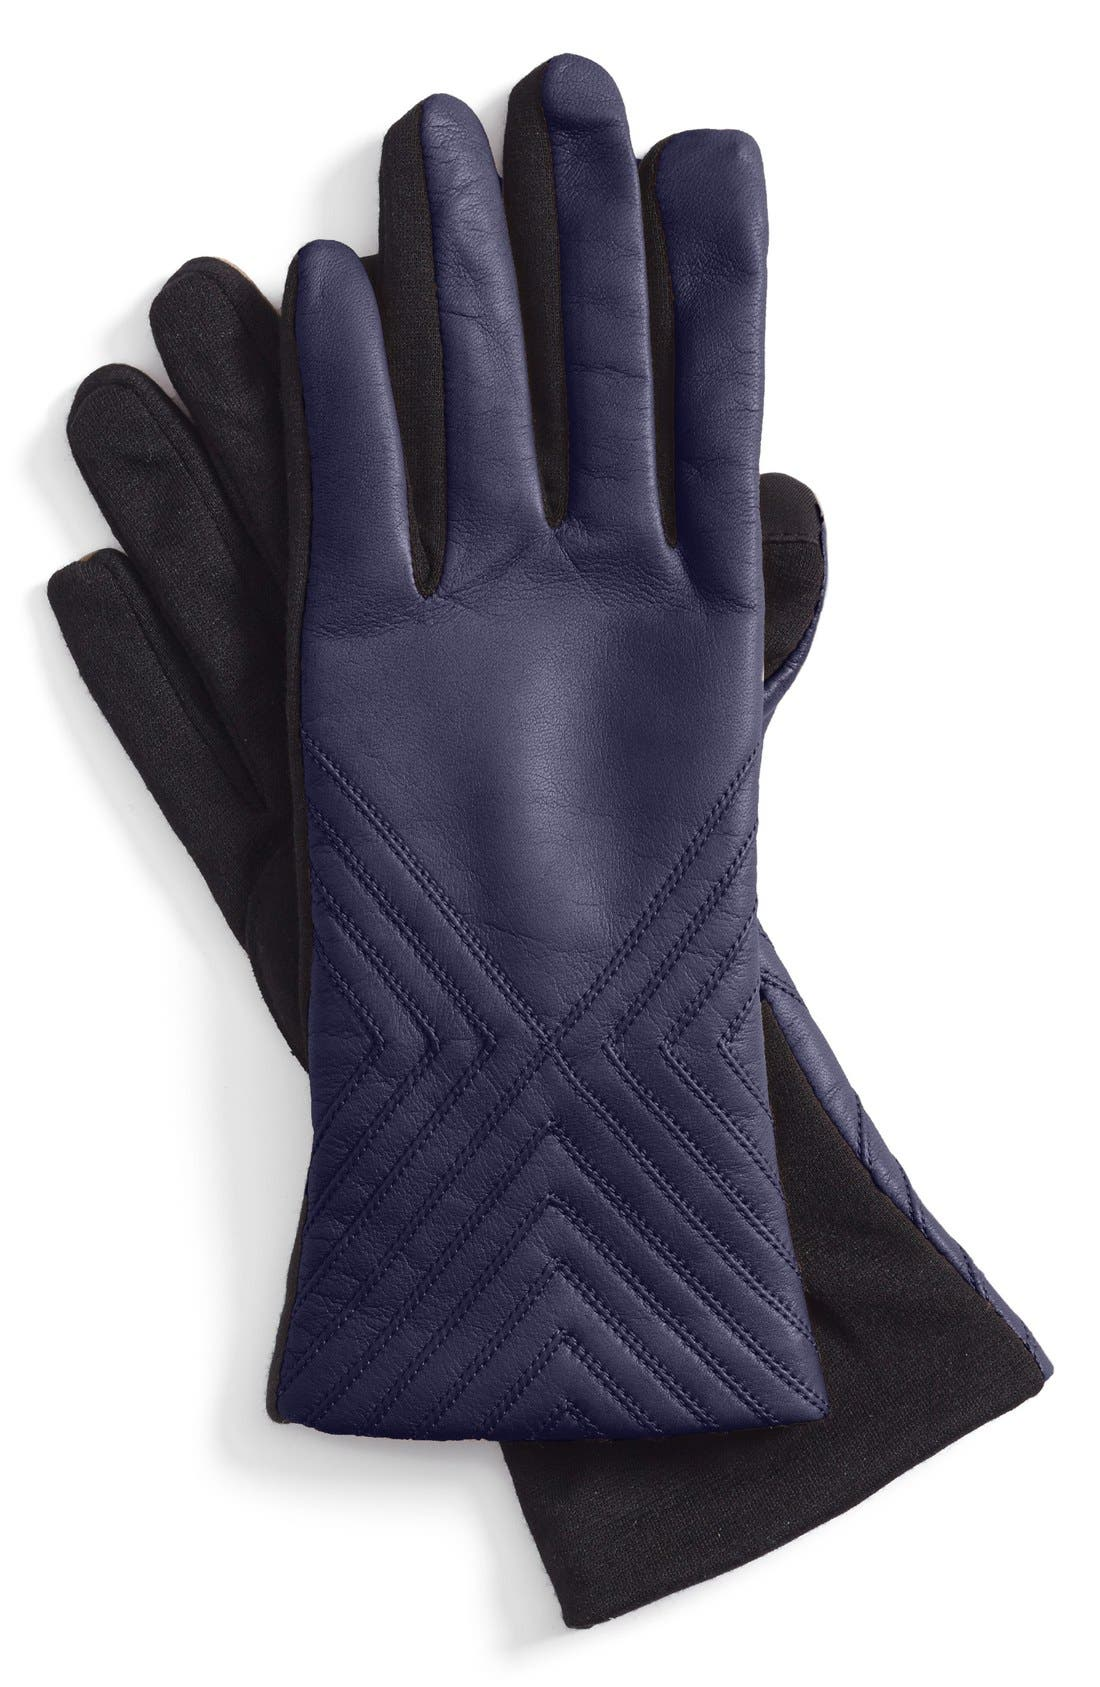 Main Image - Fownes Brothers Tech Fingertip Leather & Knit Gloves